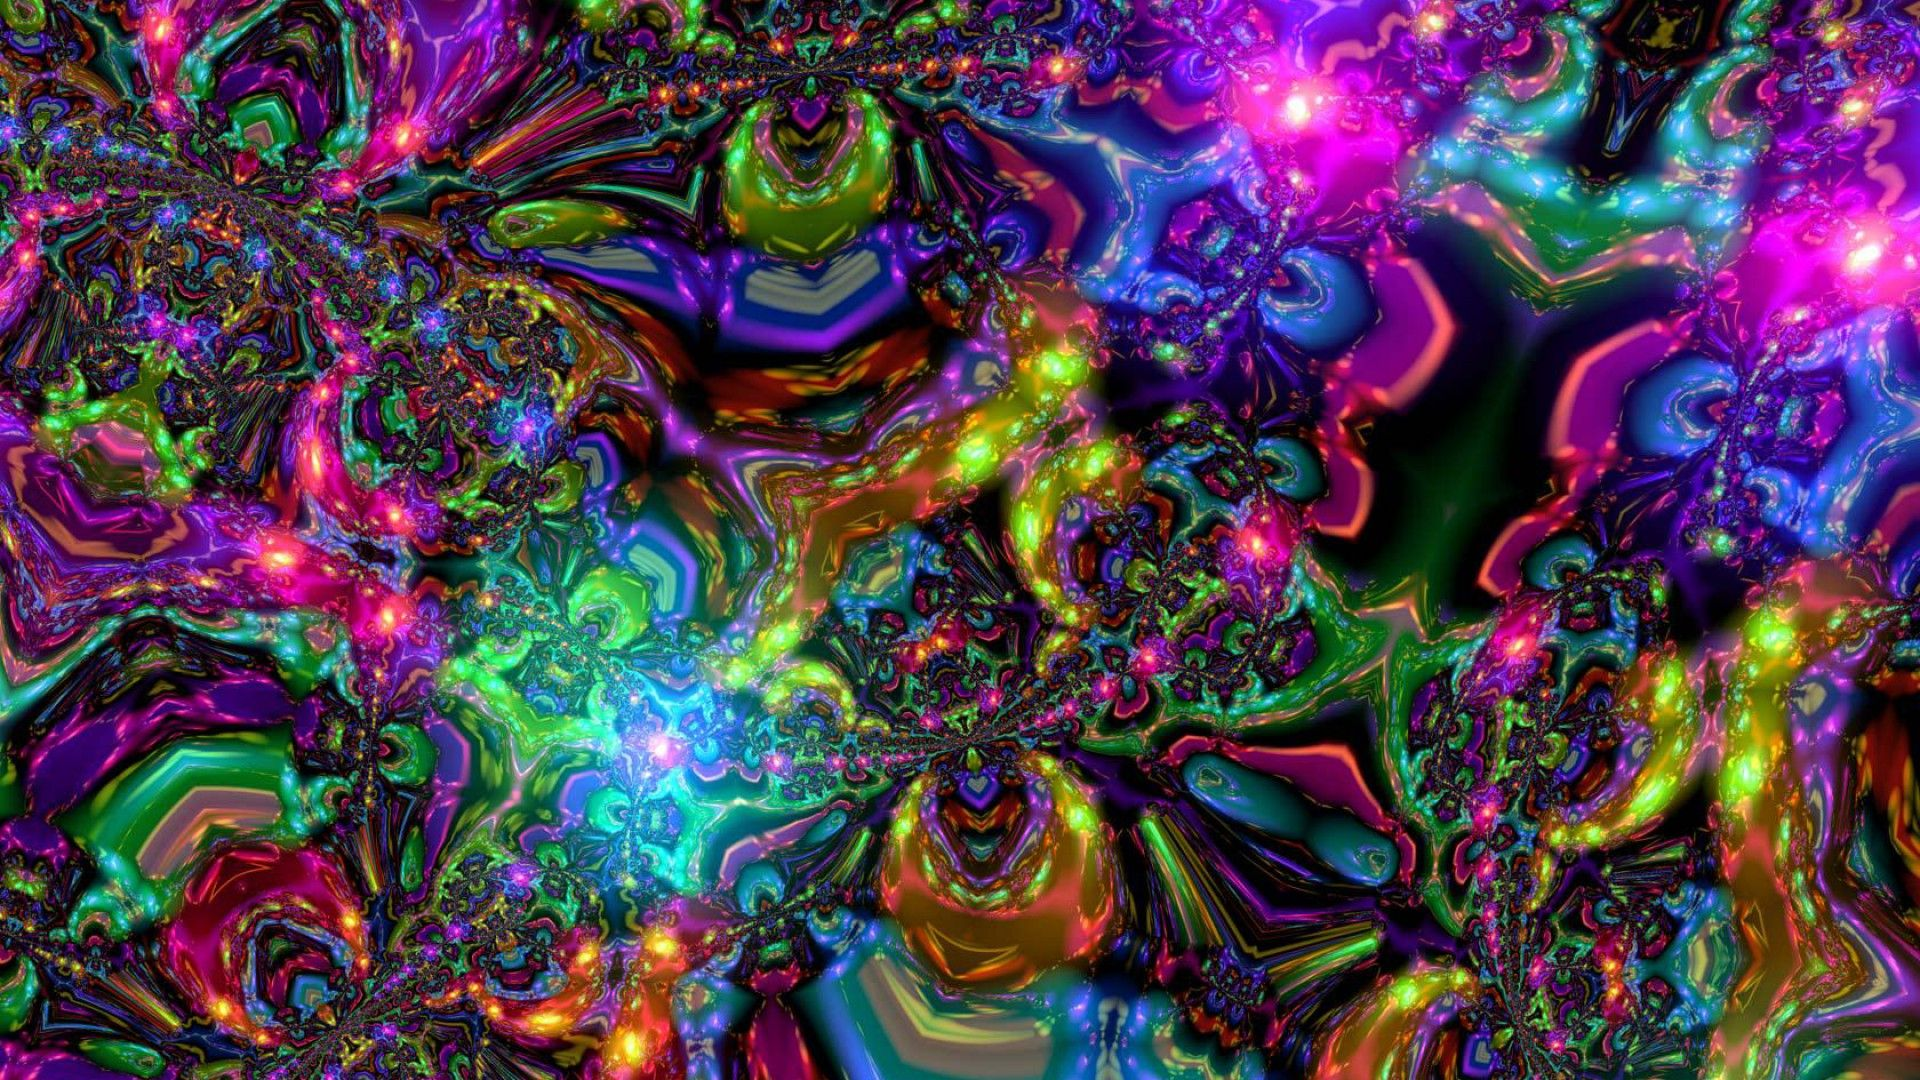 Psychedelic Art Abstract Trippy 748586 Jpg 1920 1080 Hippie